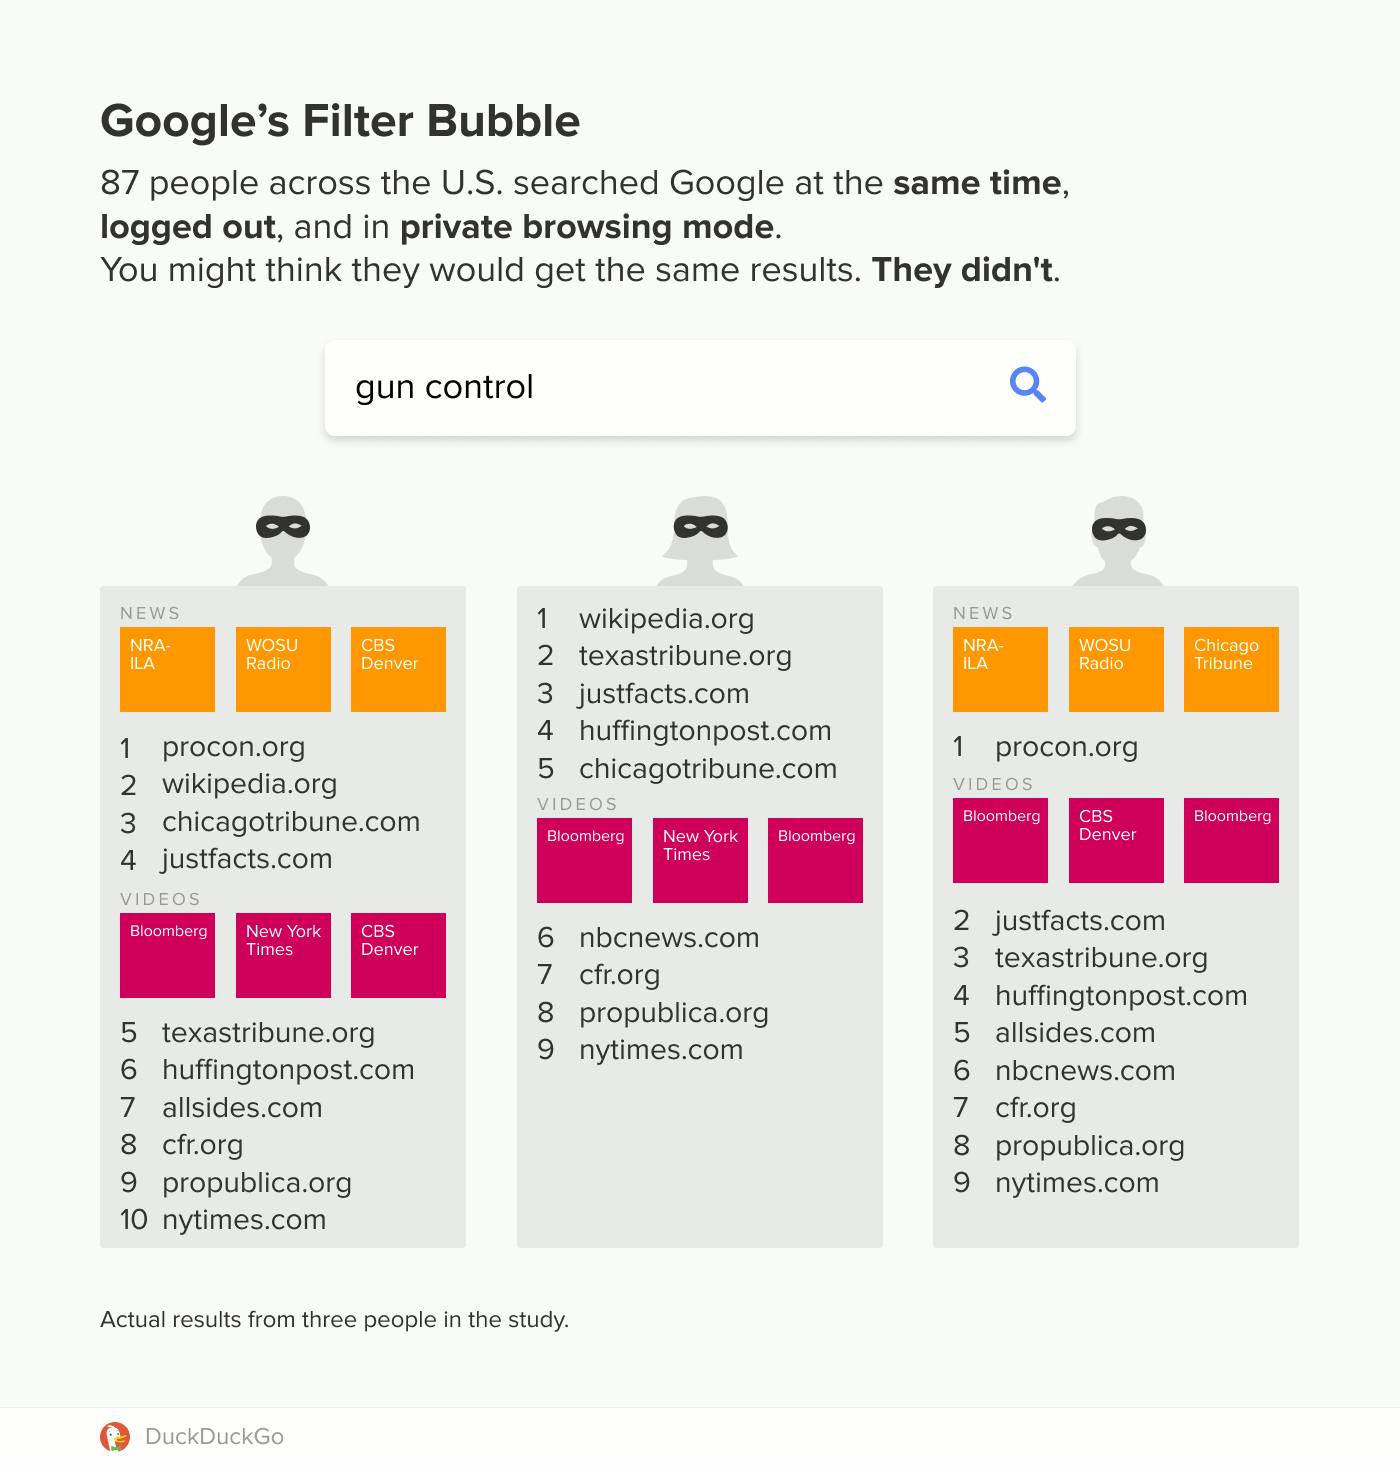 filter-bubble-overview-4